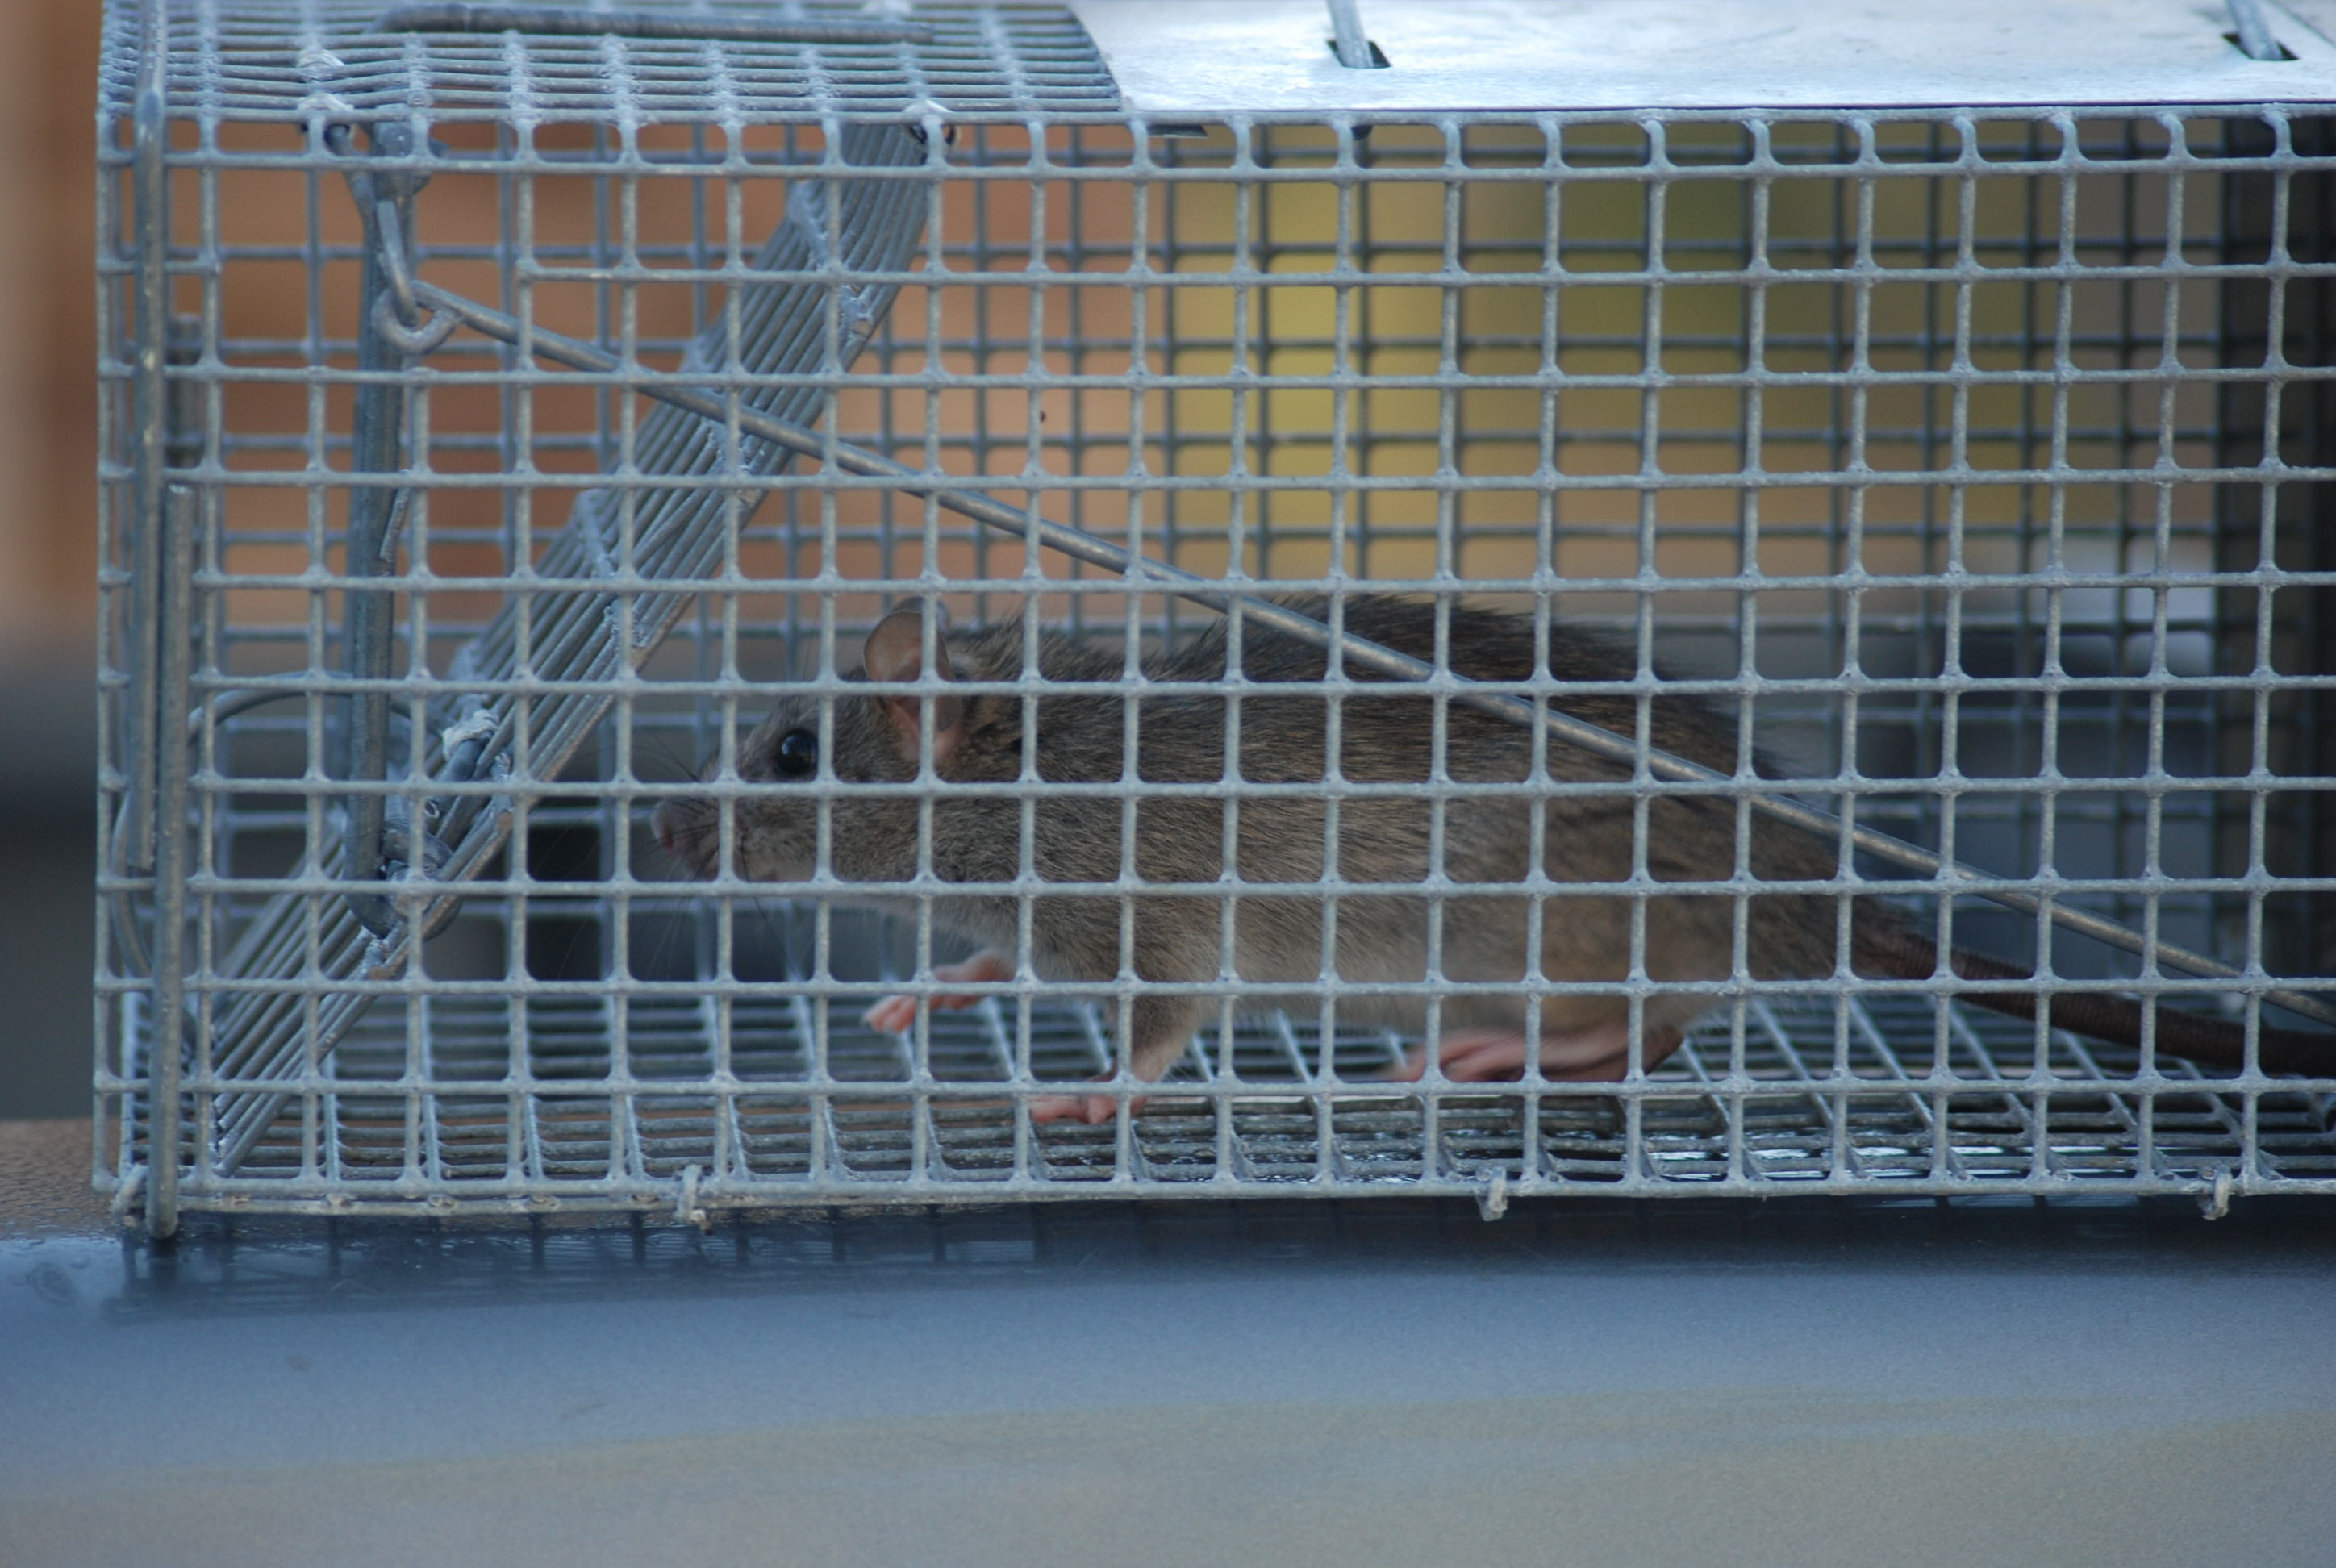 Dead rats in wall of house pest control companies will often use poison because it is very simple to do even the worst pest control companies will have access to rat poison biocorpaavc Image collections